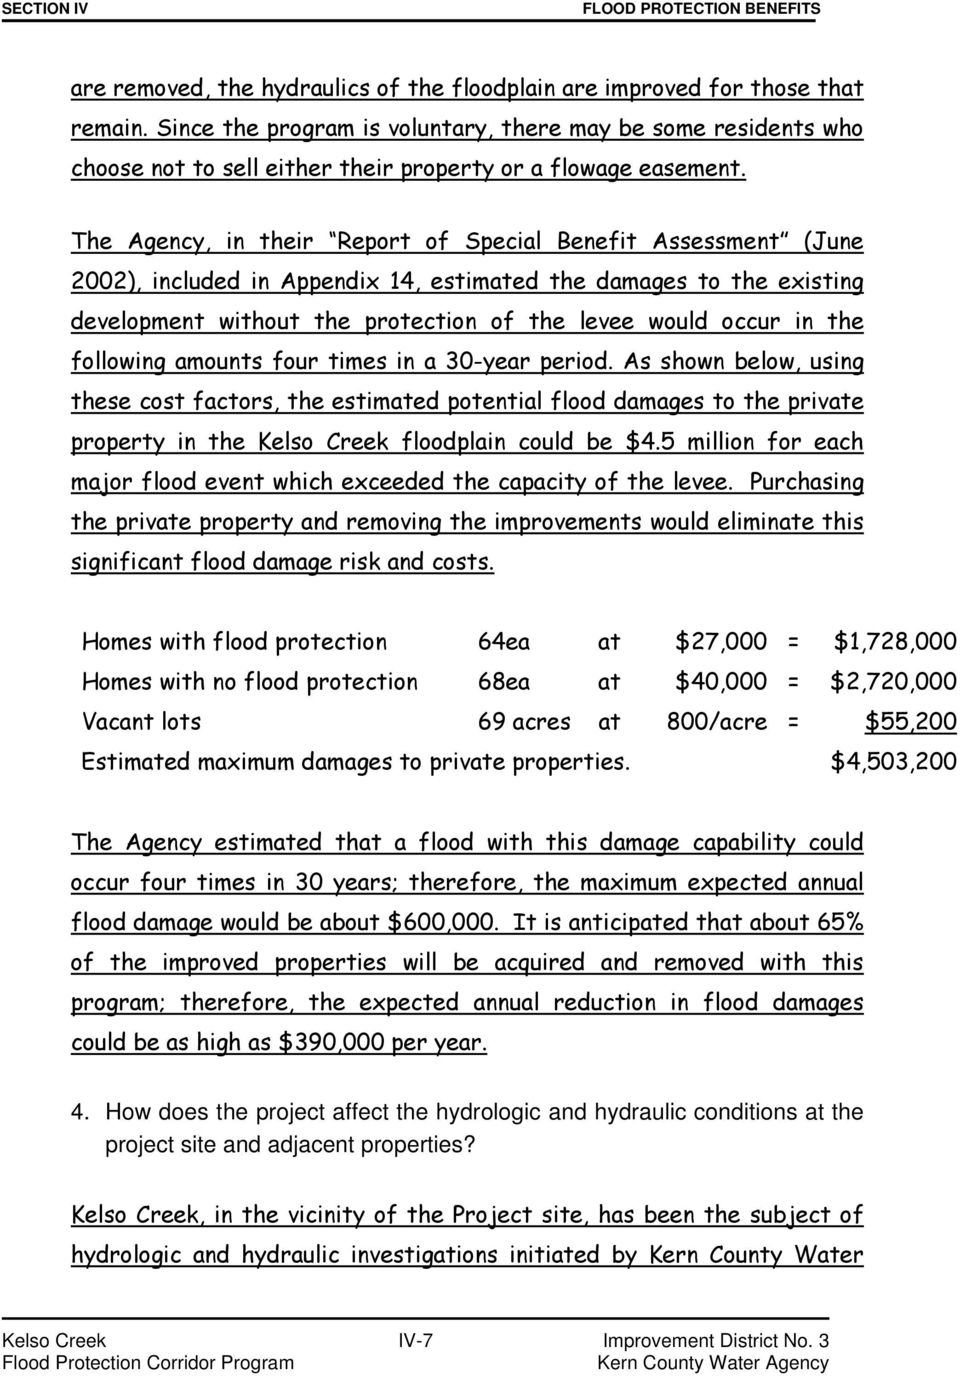 The Agency, in their Report of Special Benefit Assessment (June 2002), included in Appendix 14, estimated the damages to the existing development without the protection of the levee would occur in